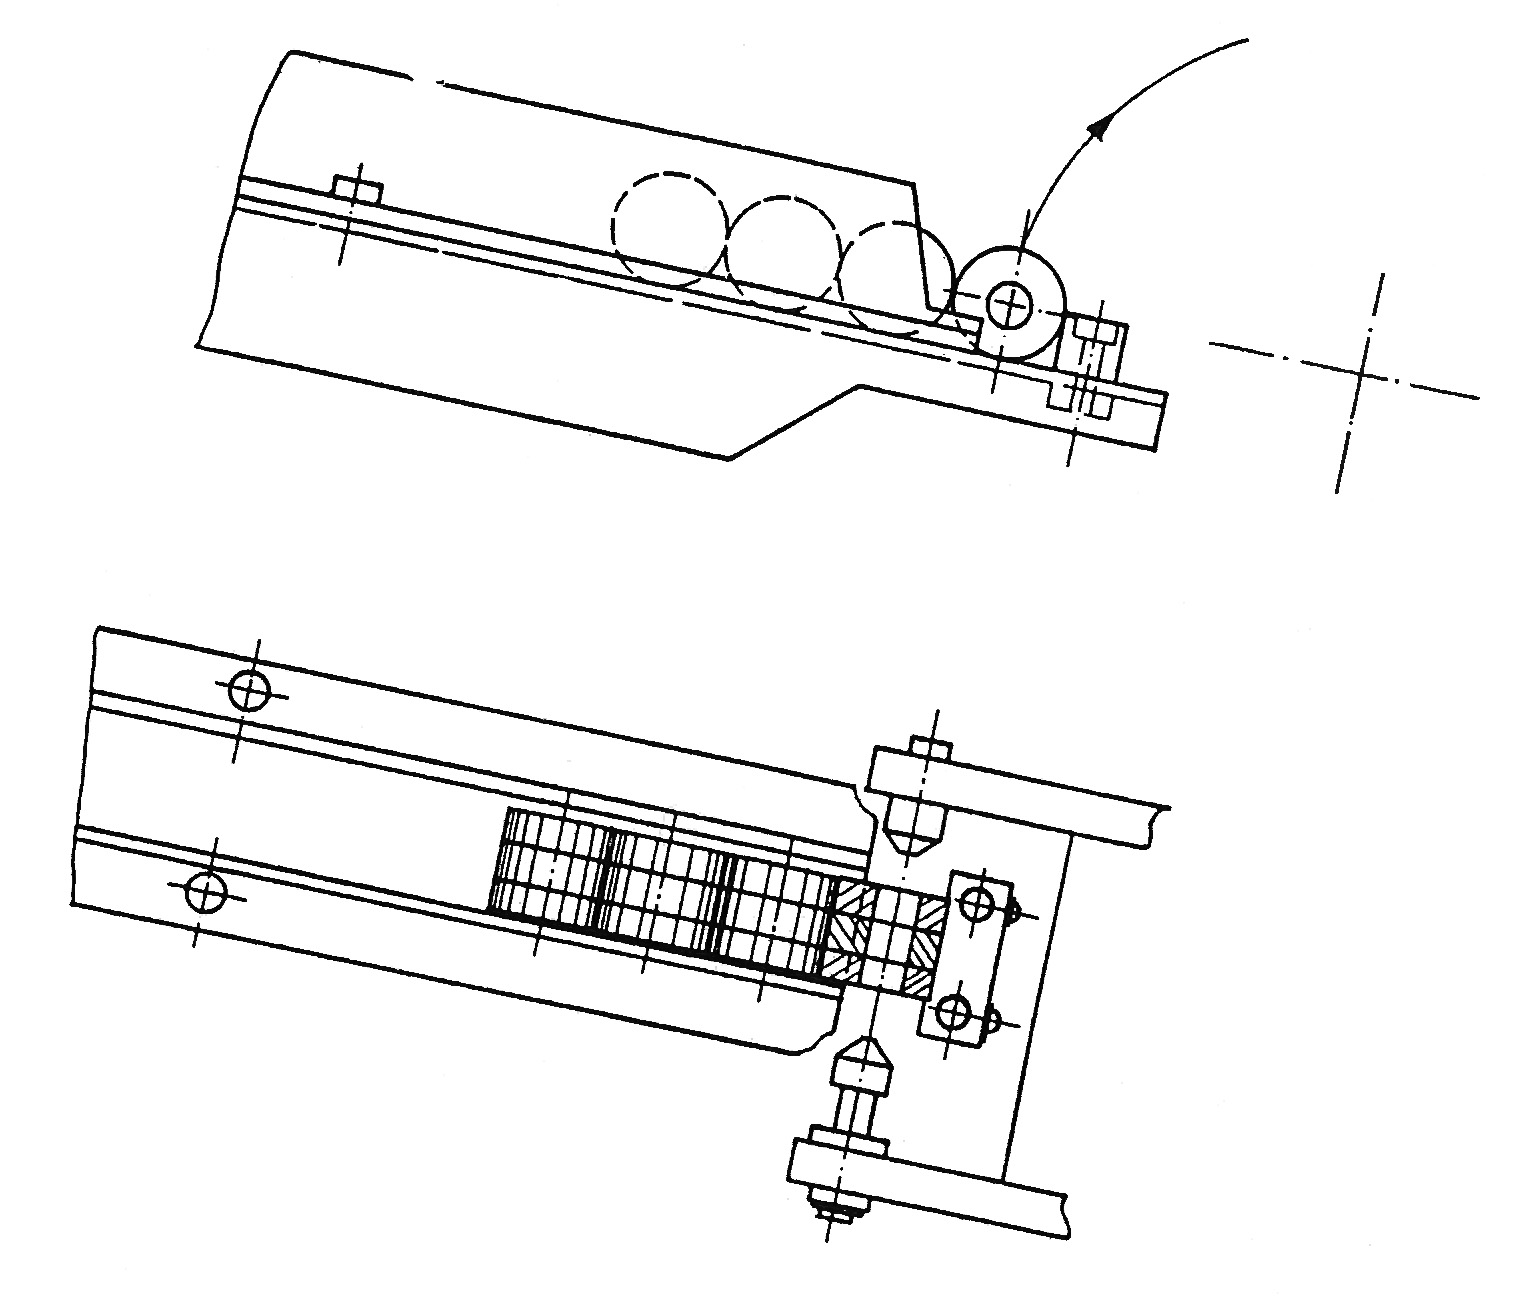 Loading Diagram of Bore-Type Parts